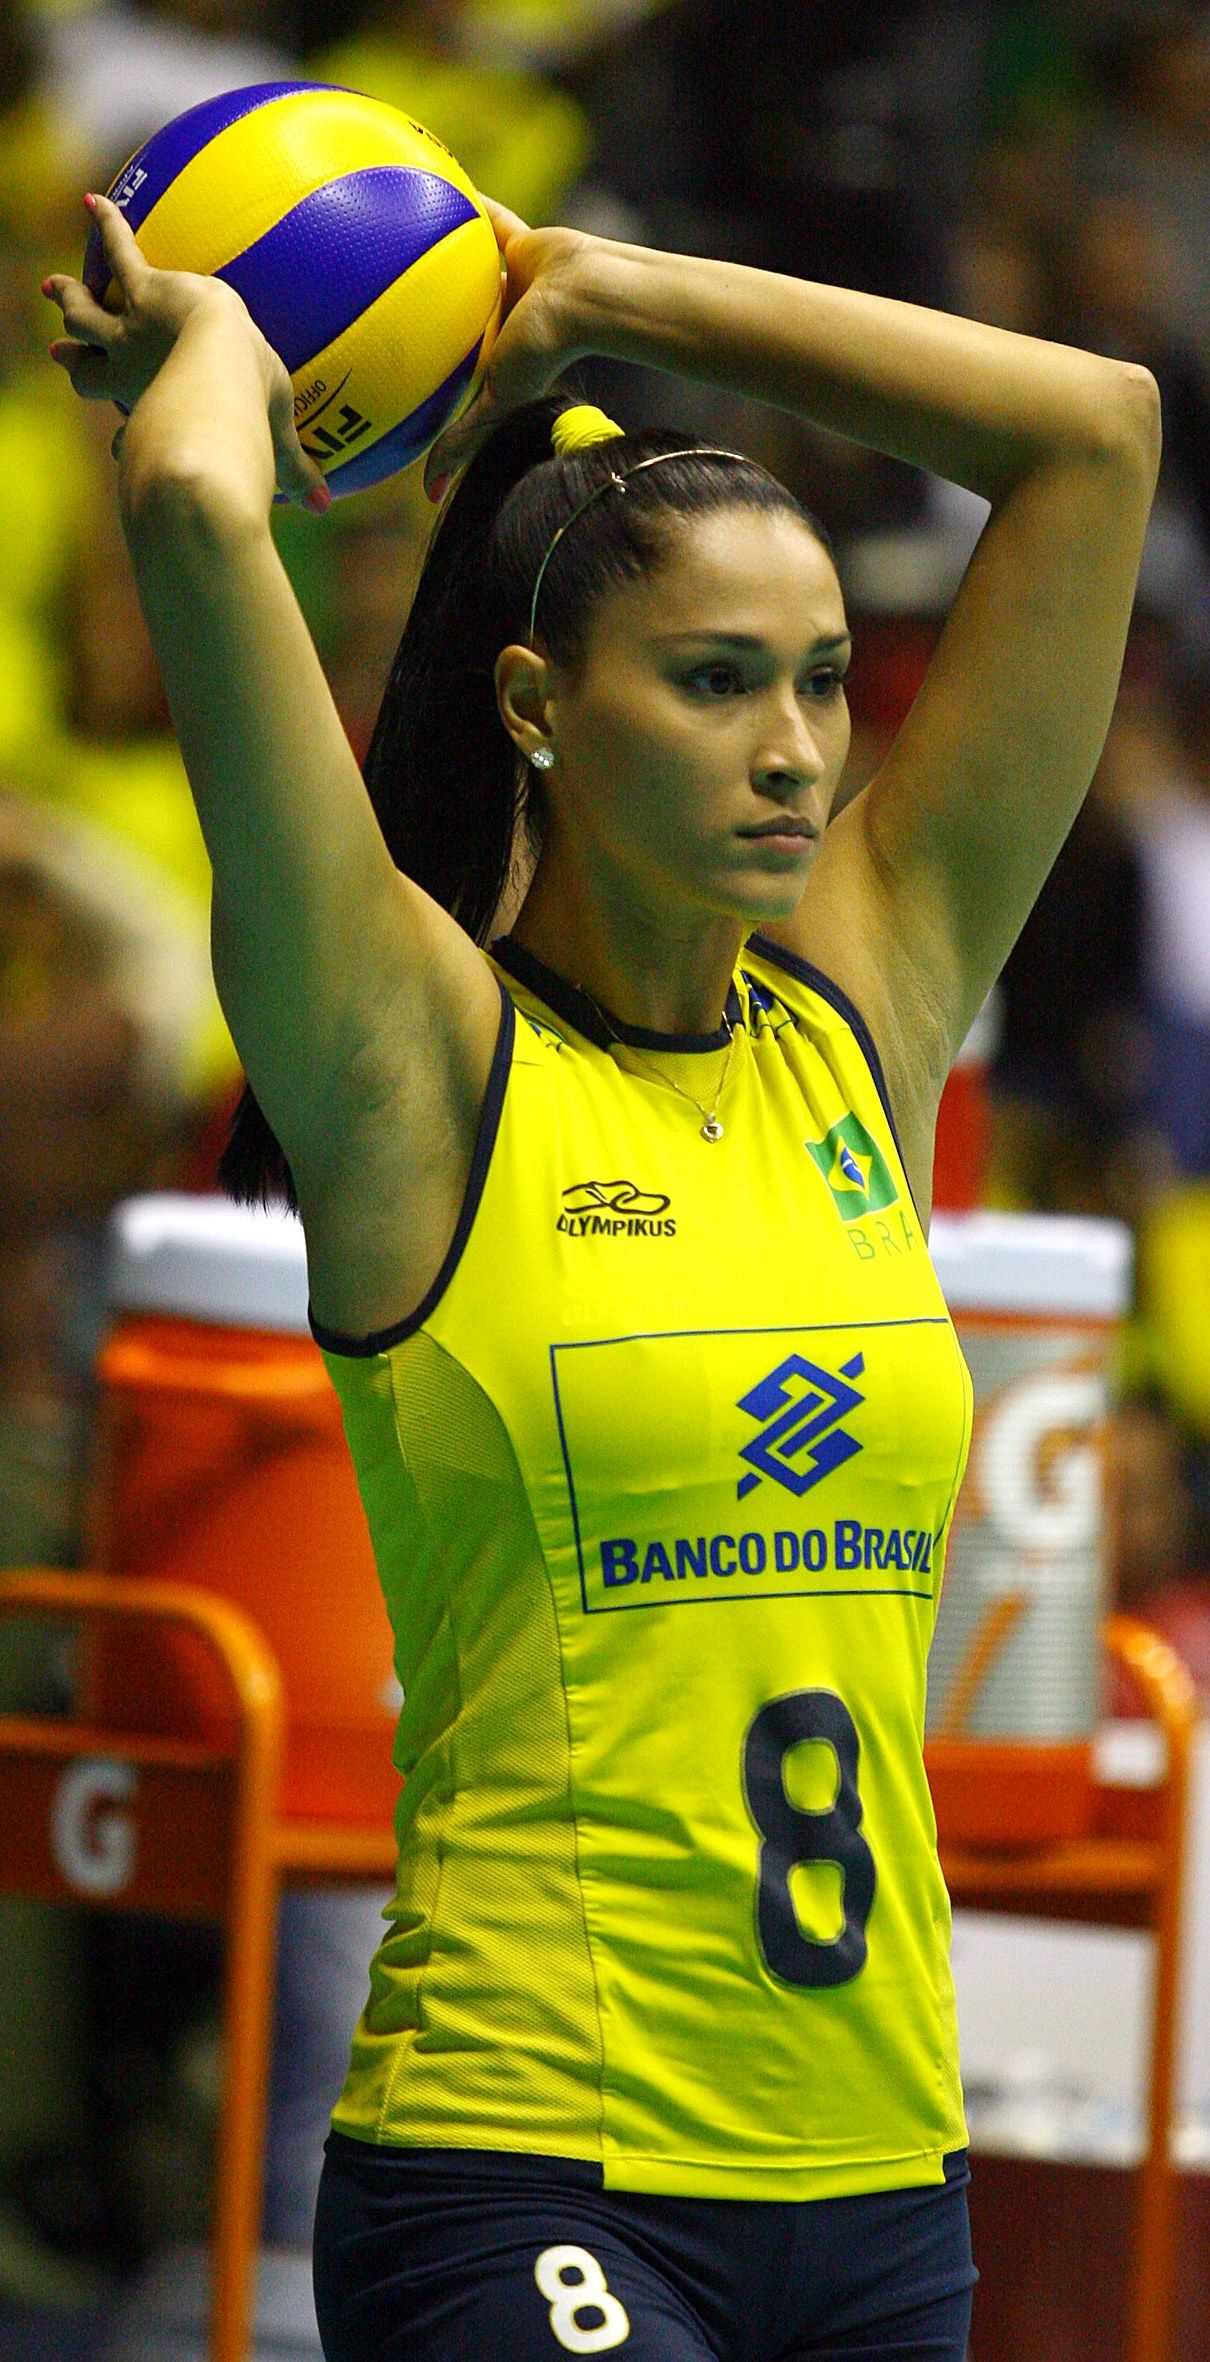 Jaqueline Maria Pereira De Carvalho Endres Brazilian Volleyball Player Volleyball Femenino Atleta Atletismo